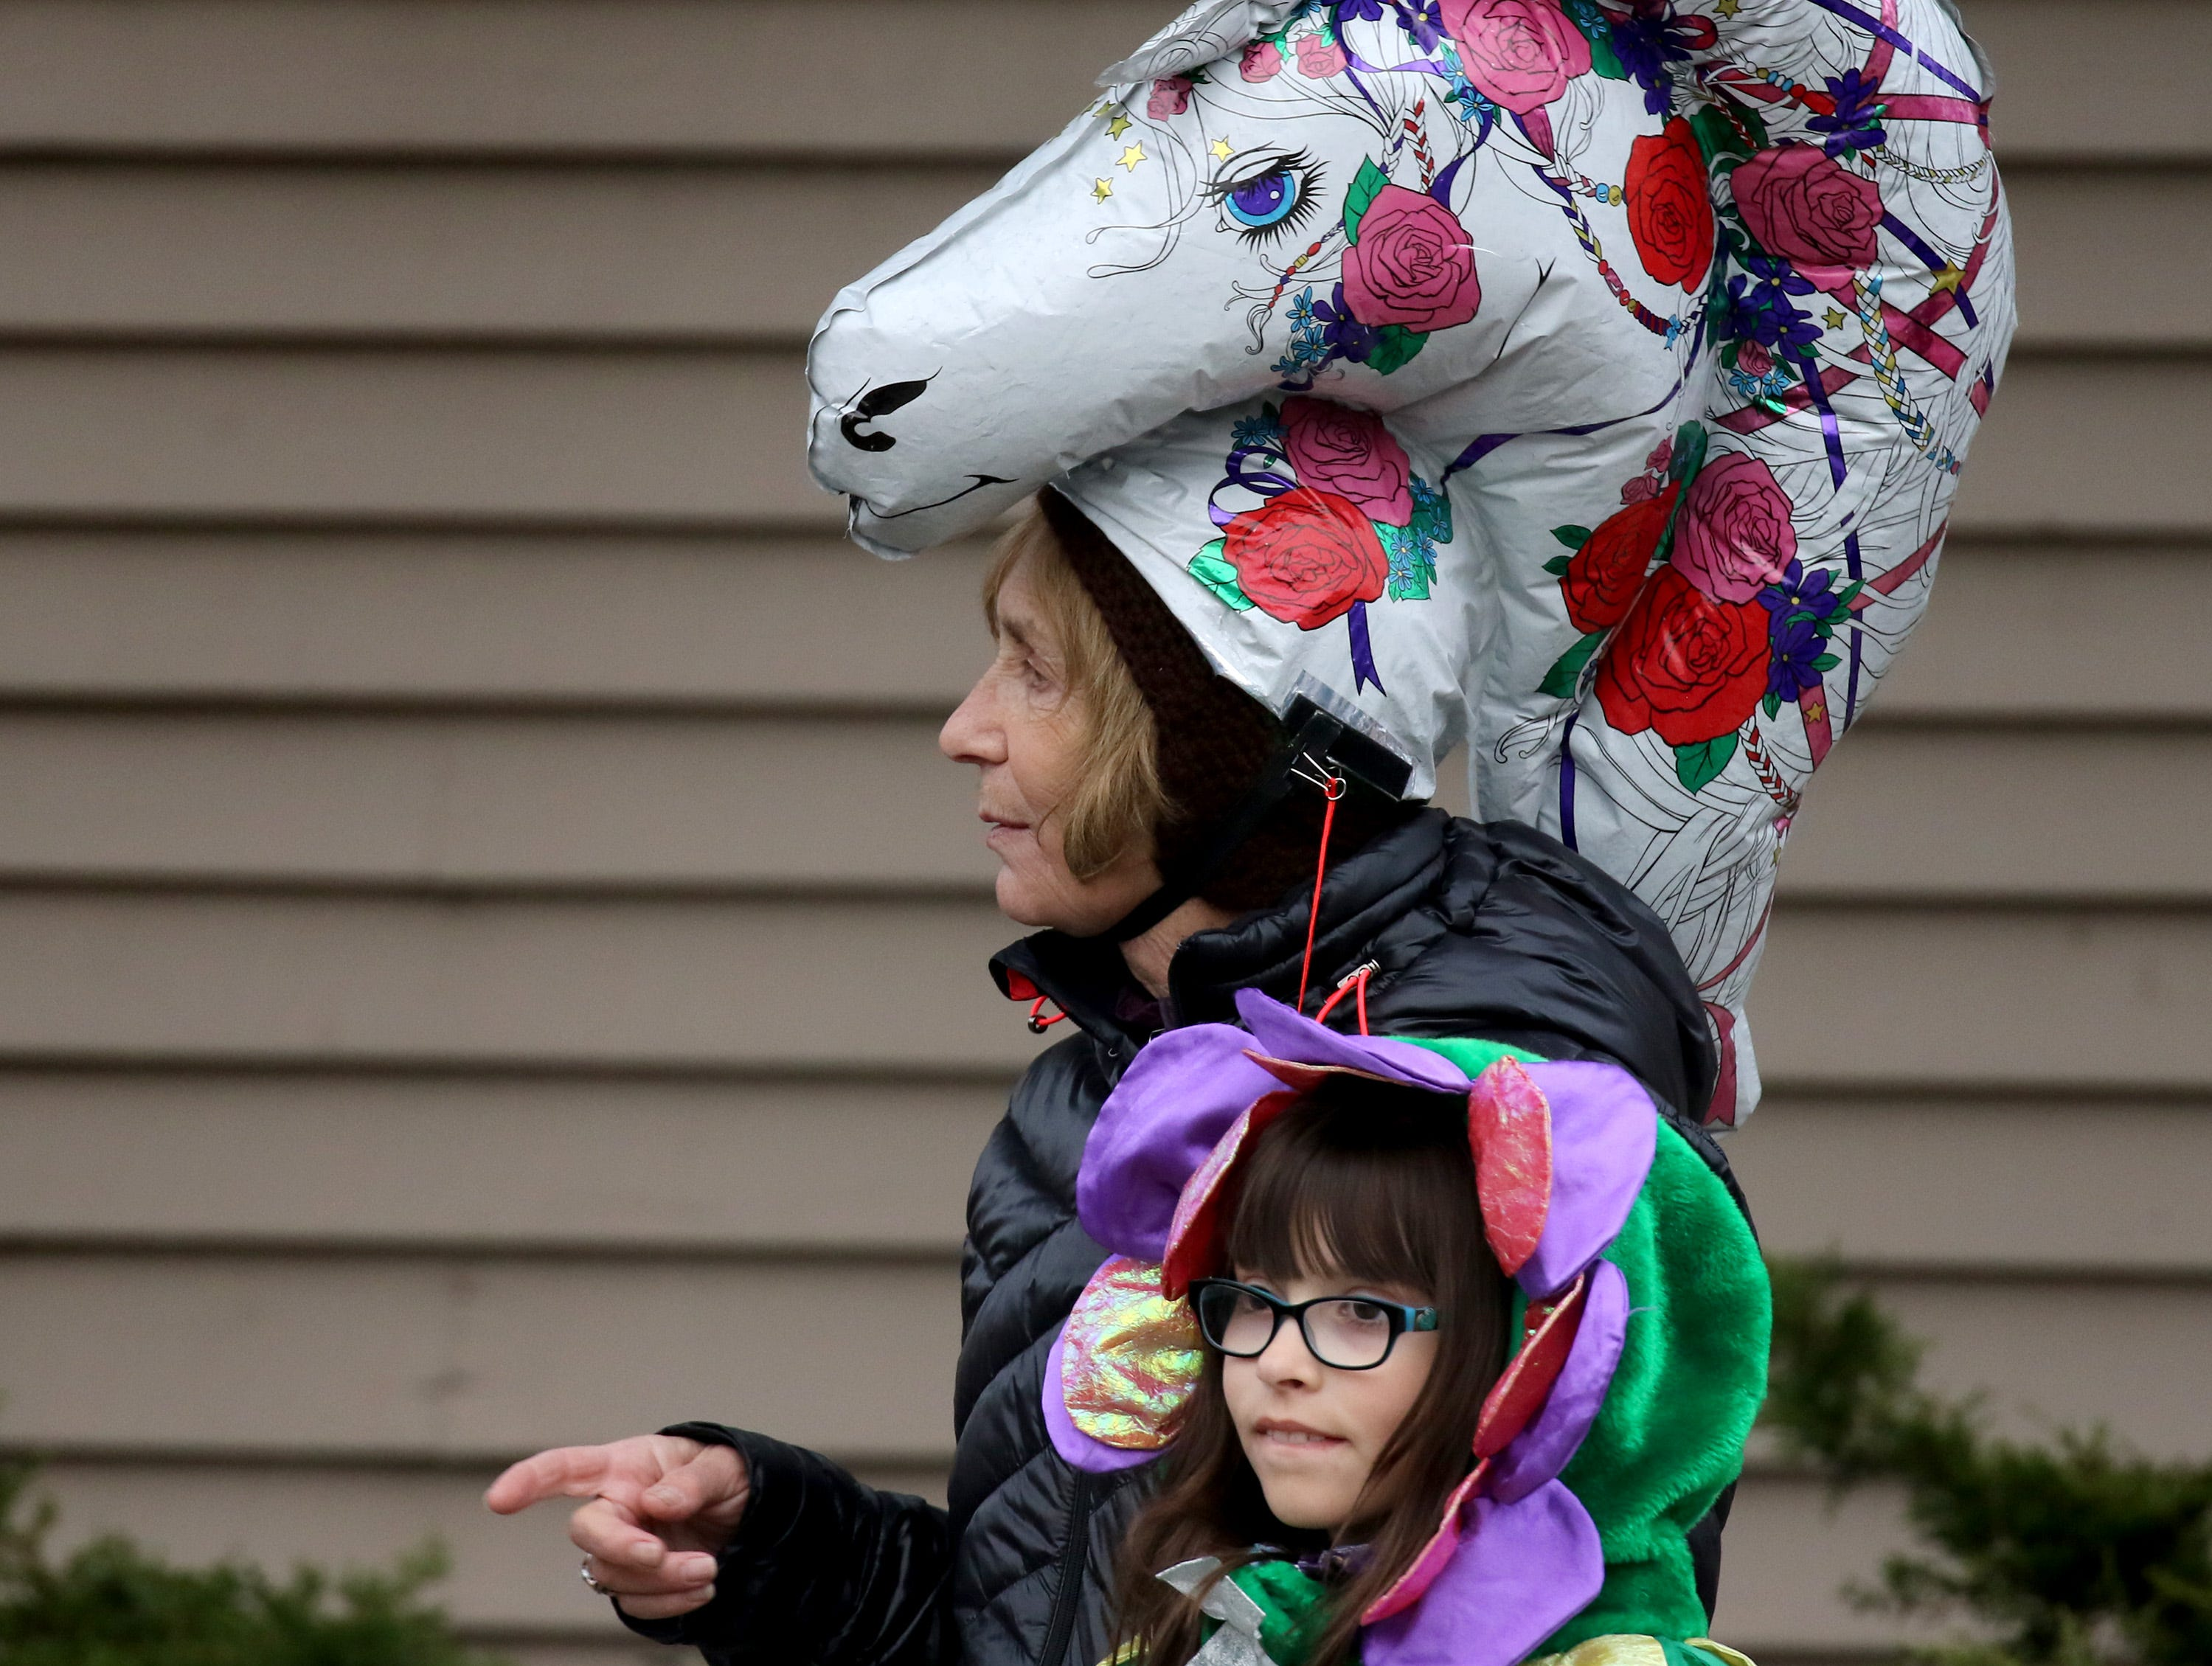 Elise Fuhr (front) and Barbara Fuhr make their way through the streets during the Menomonee Falls Downtown Trick or Treating on Oct. 25.